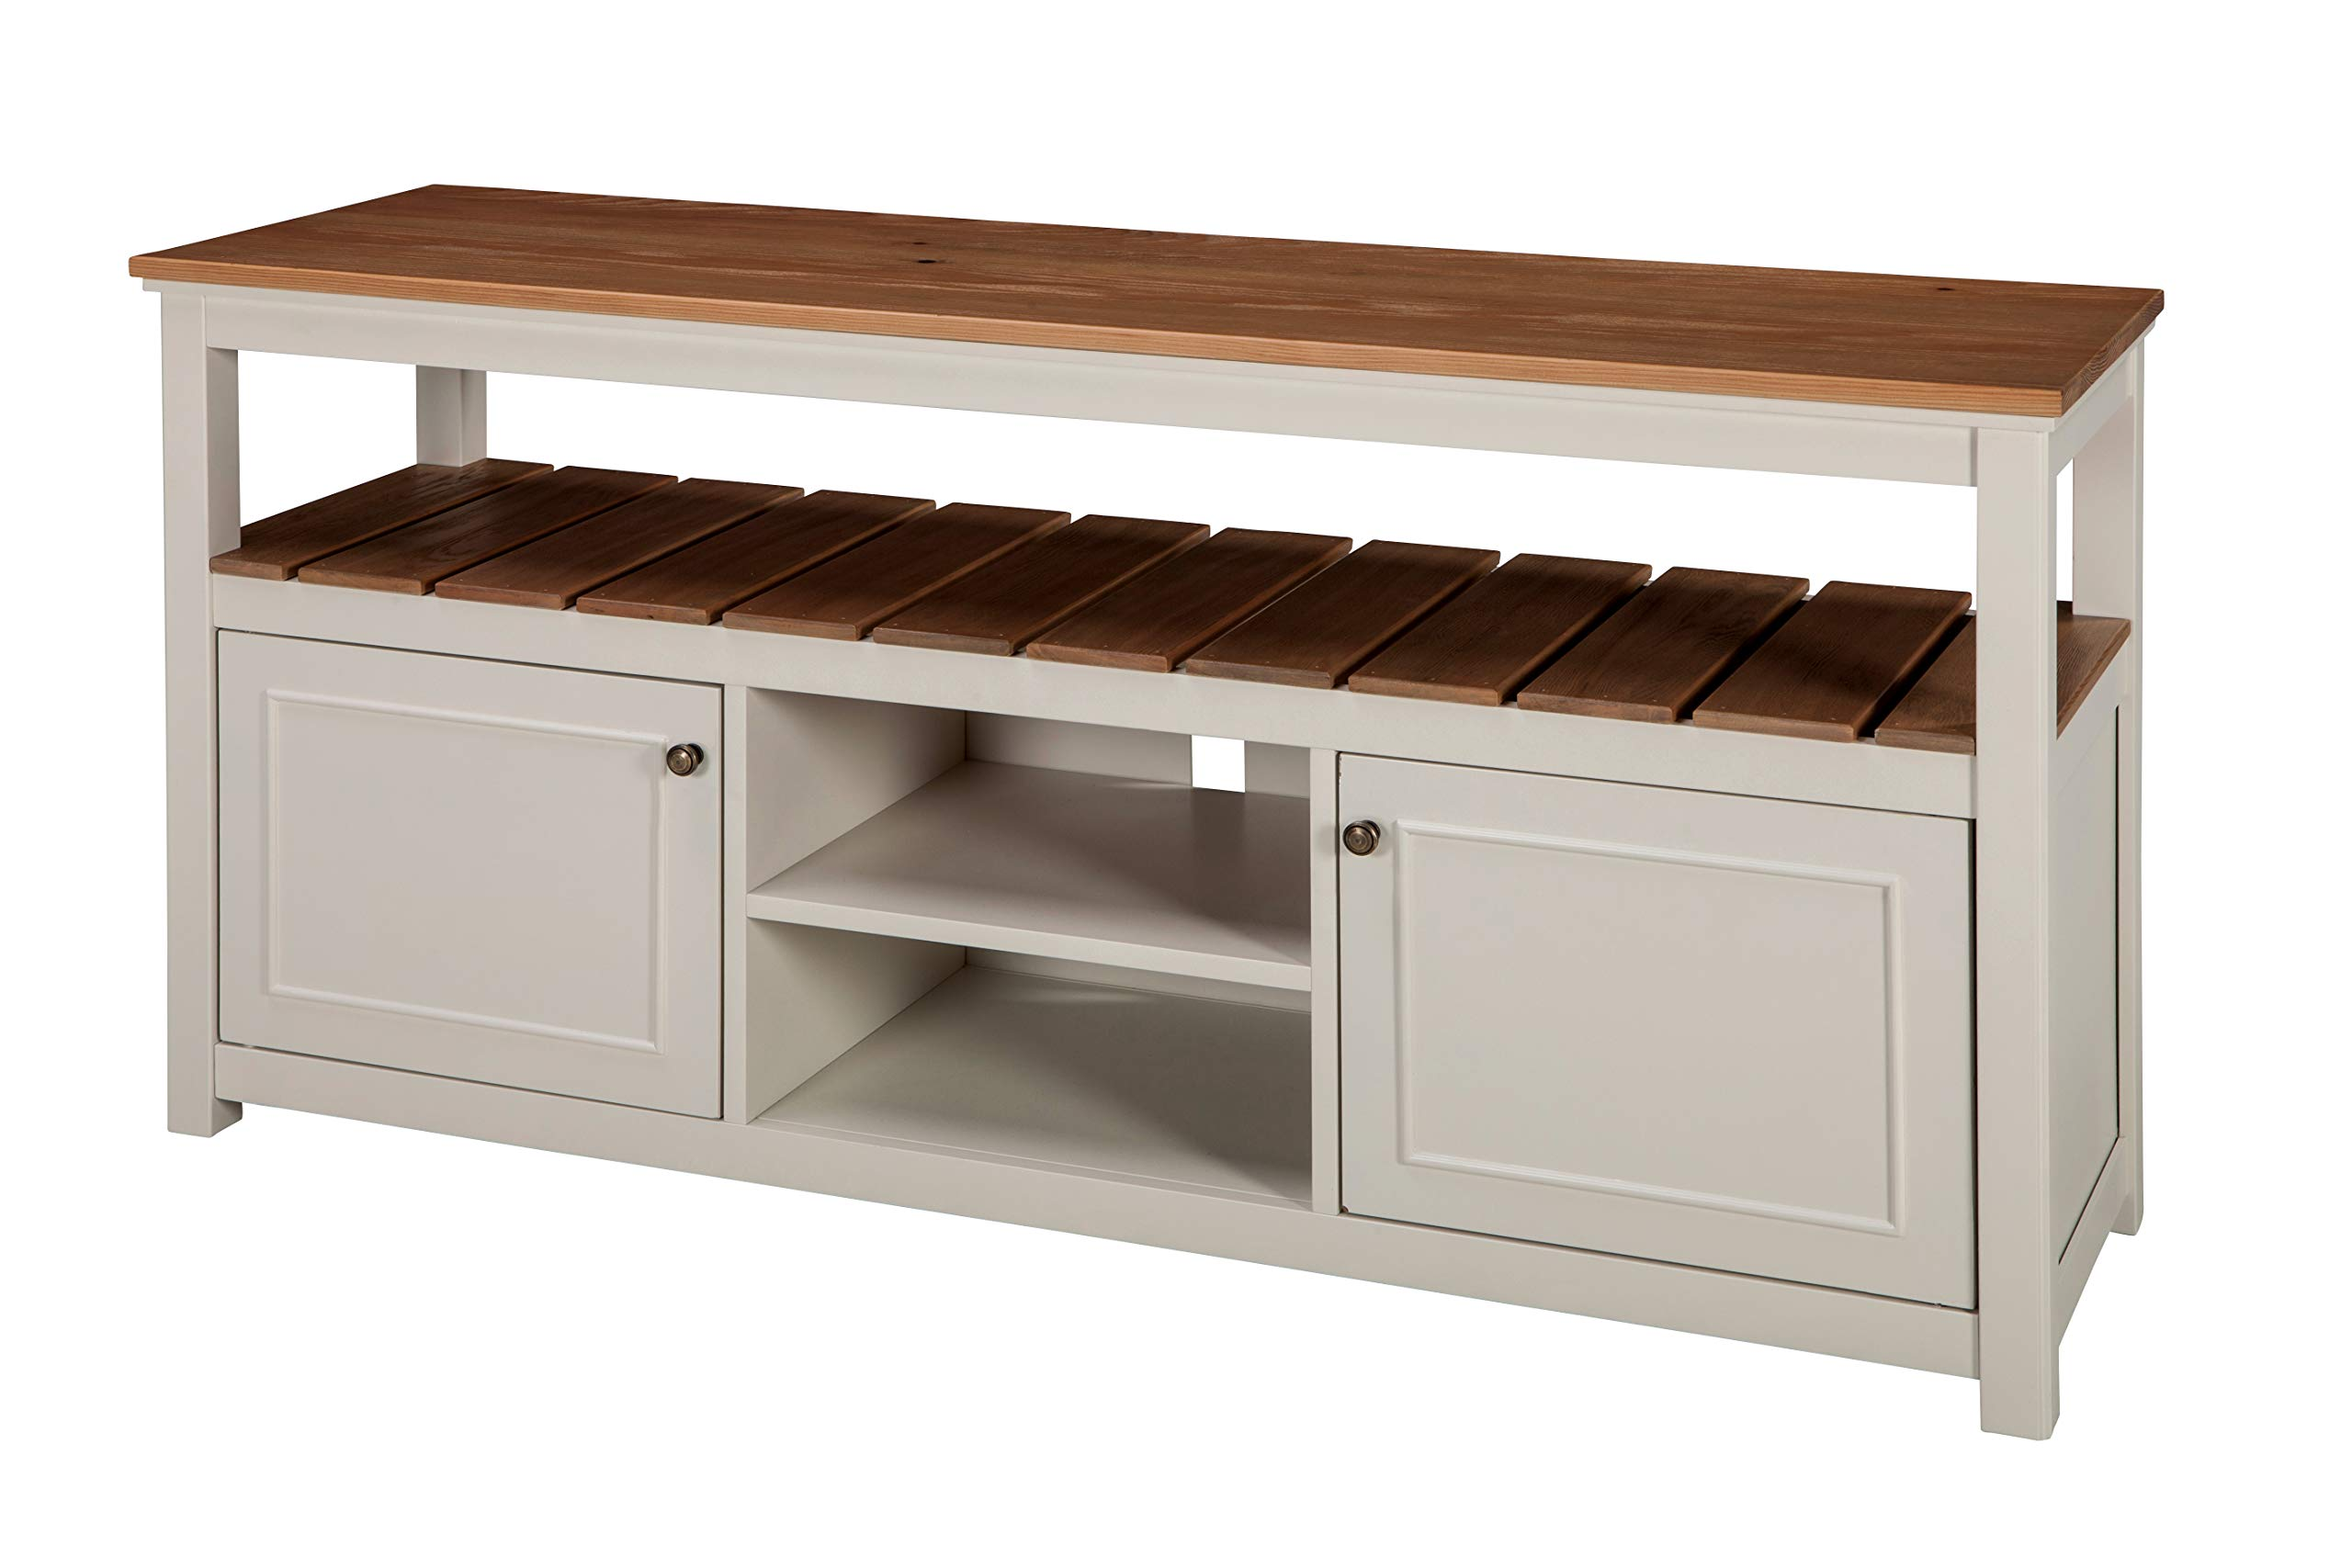 Savannah 2-Door TV Cabinet, Ivory with Natural Wood Top by Alaterre